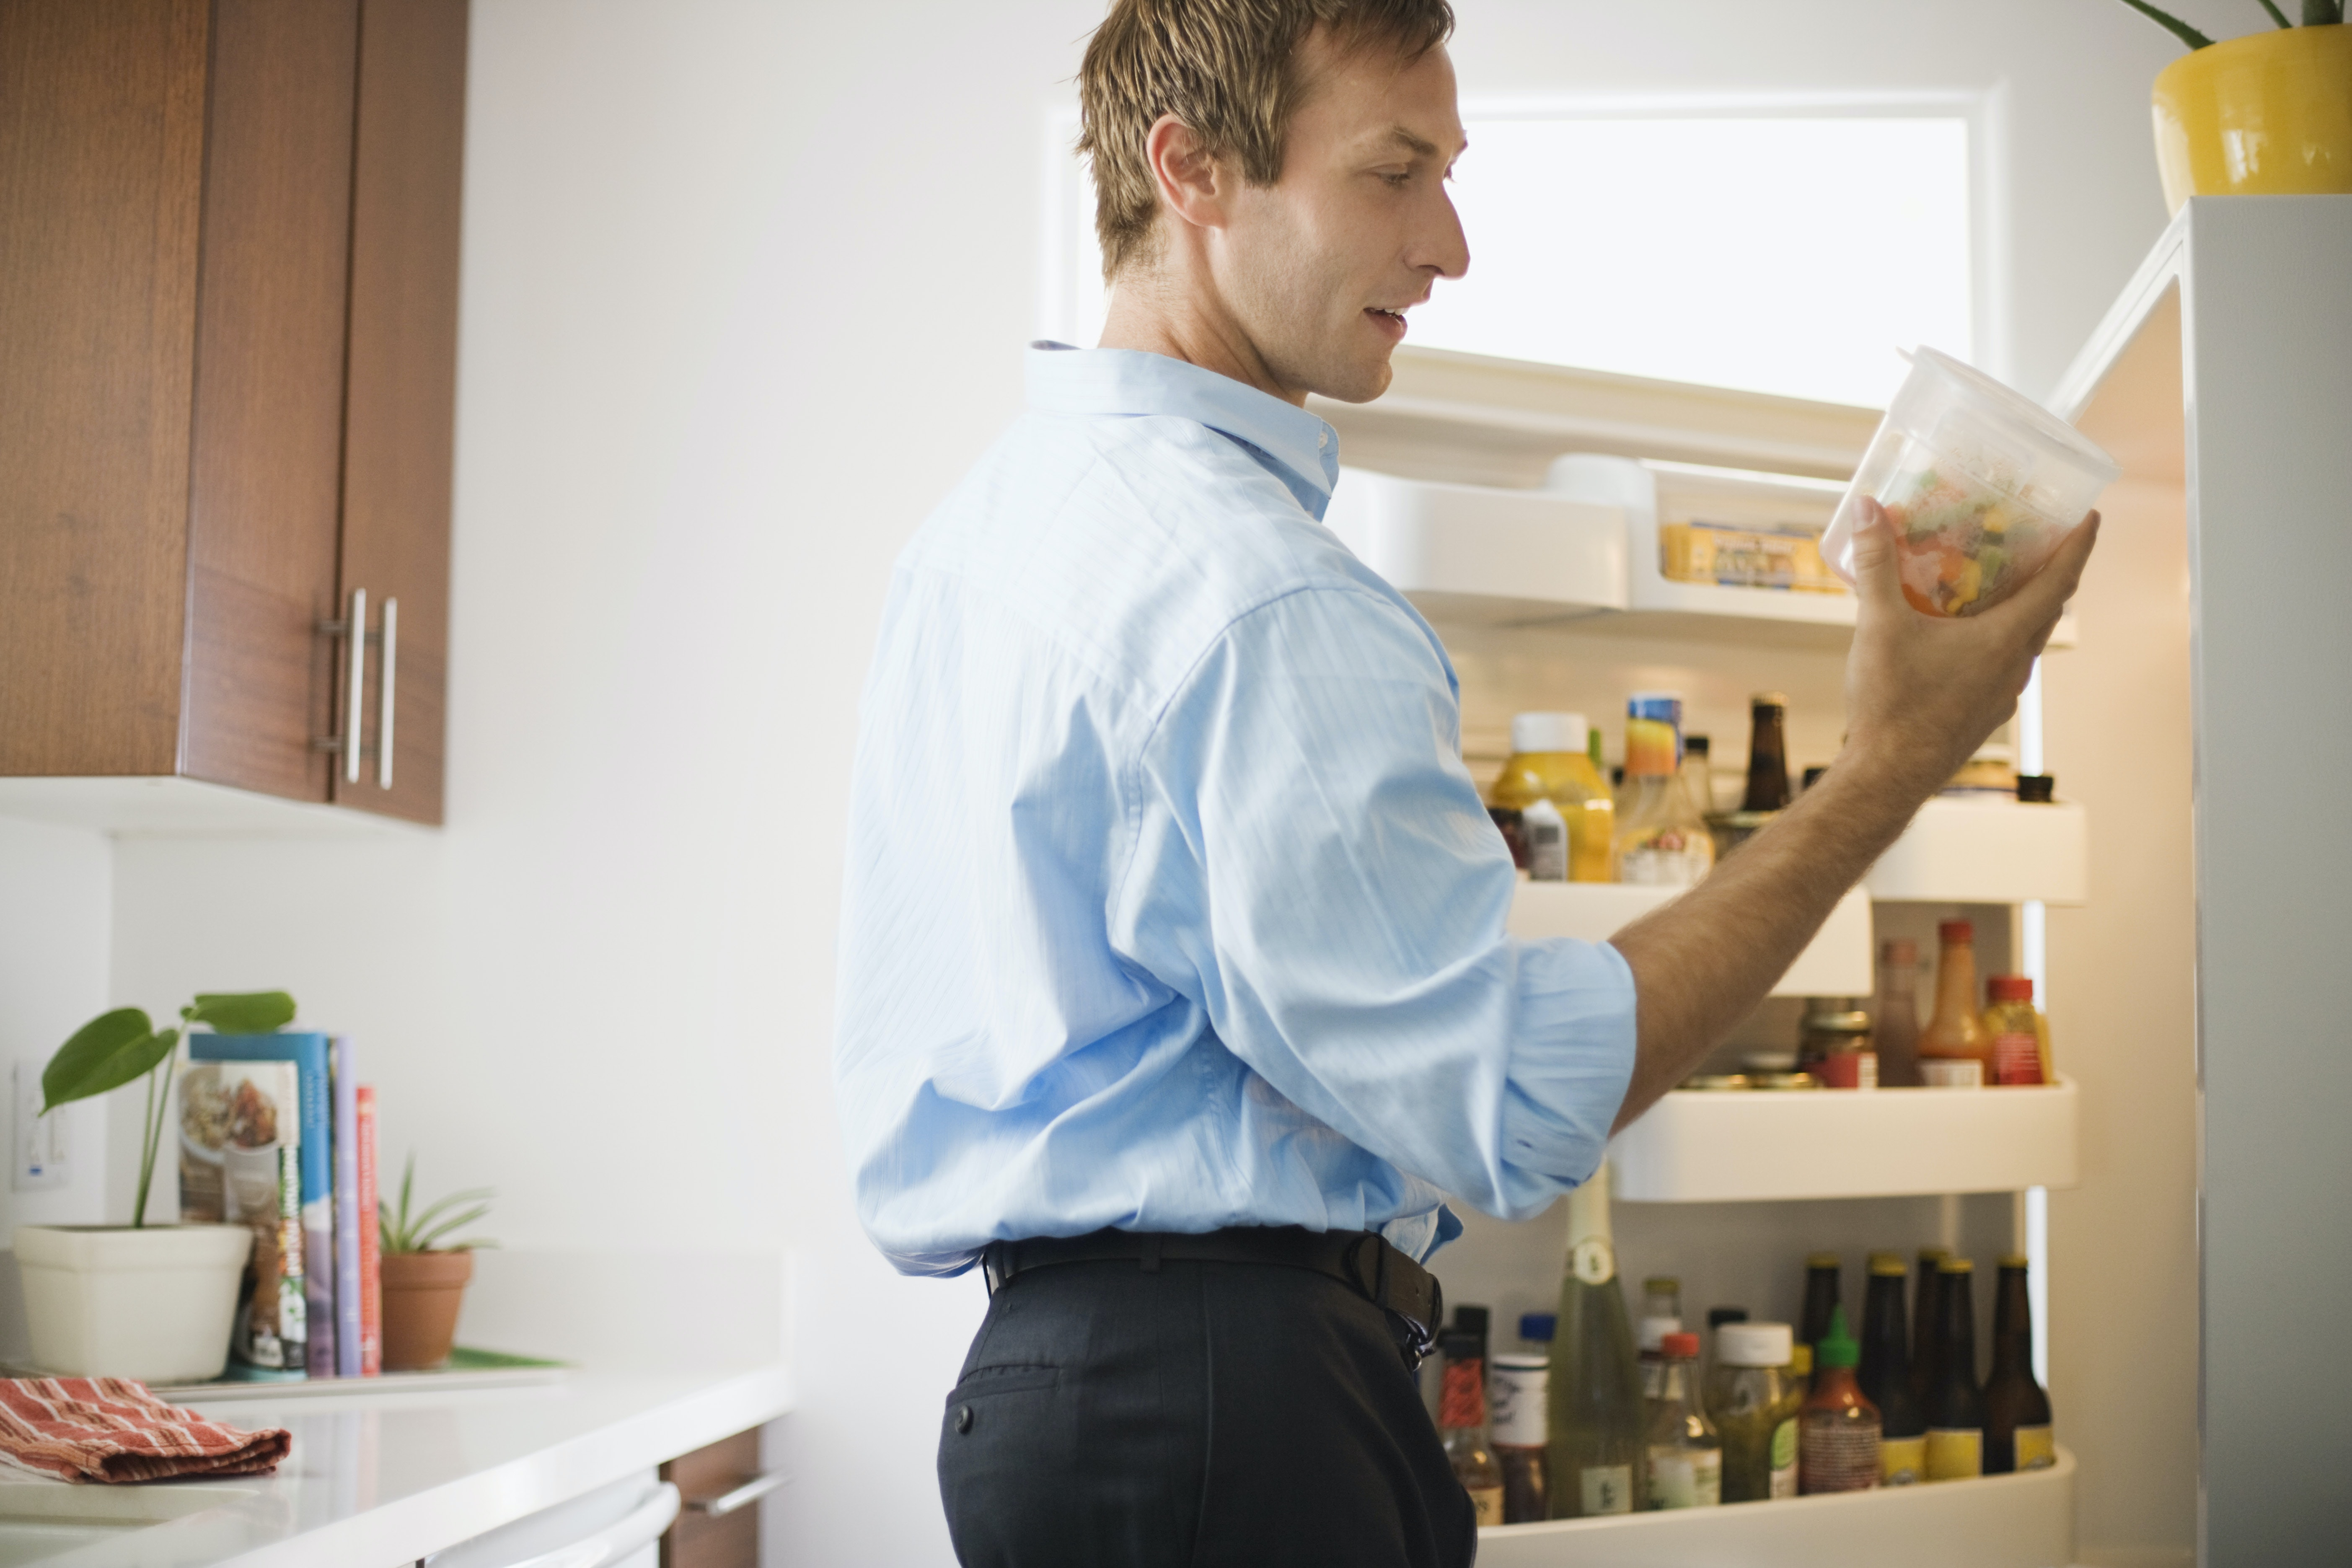 A man takes leftovers out of the refrigerator.